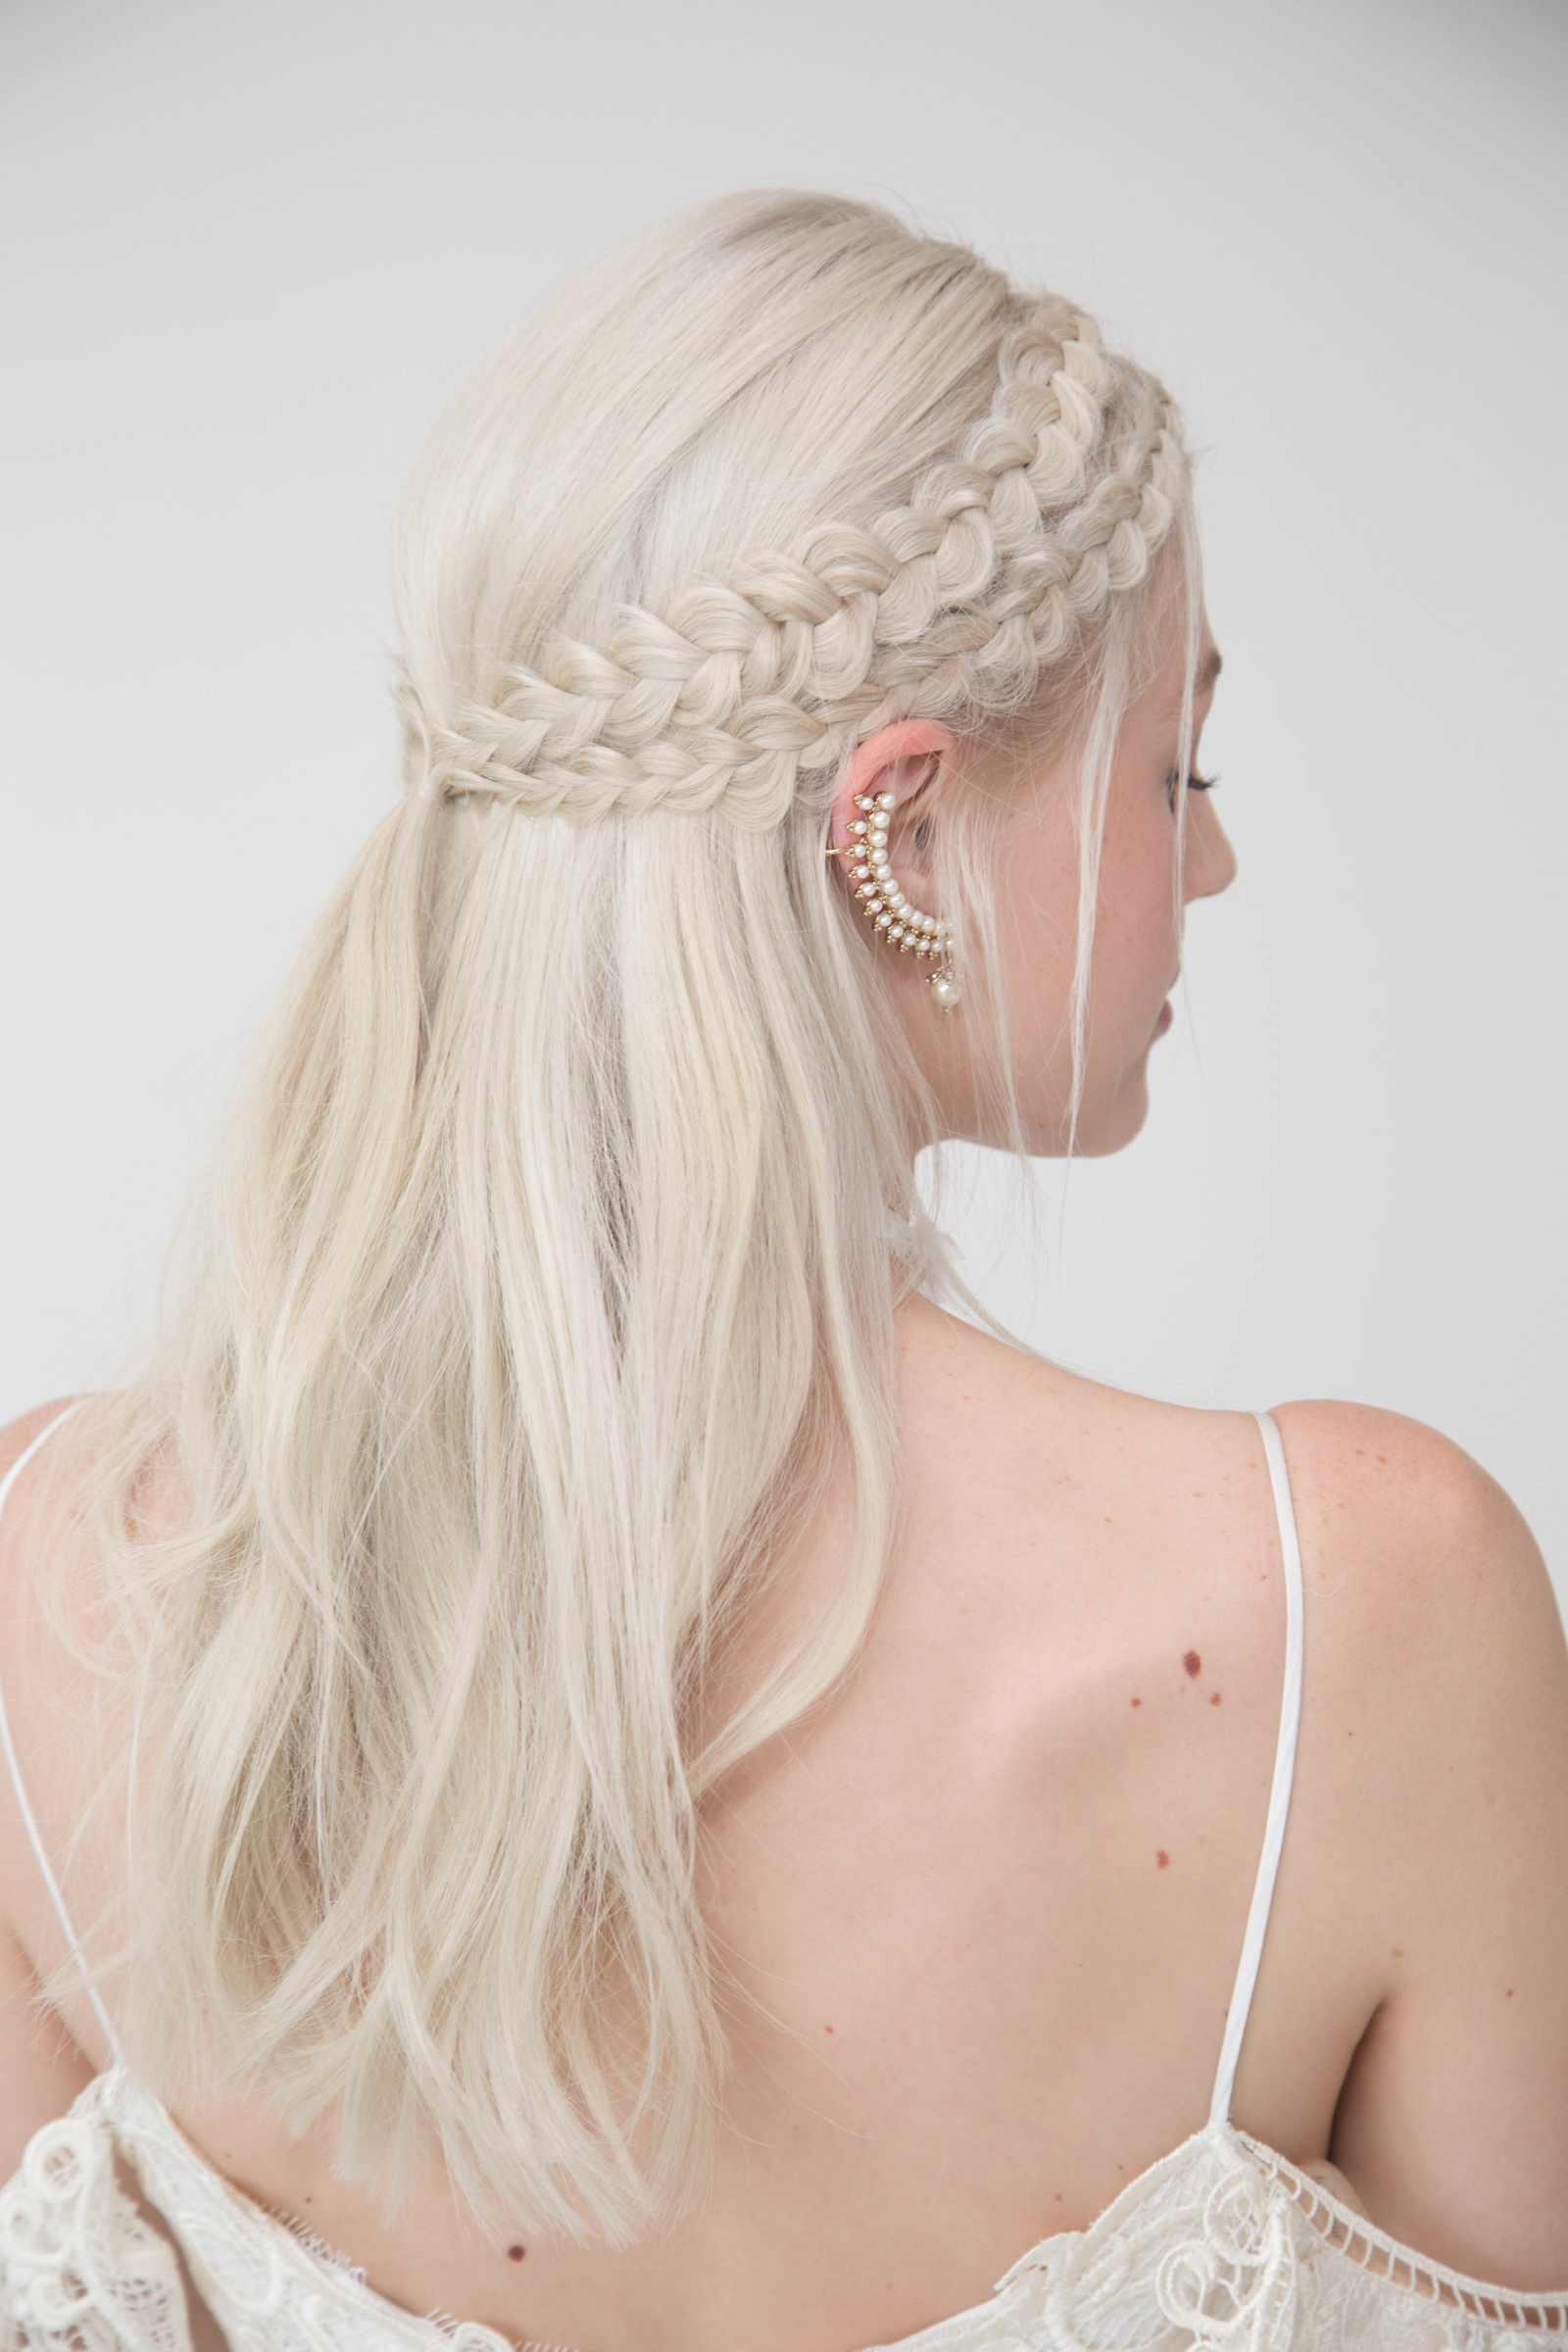 Marchesa Notte Hairstyle for Spring 2018 Bridal Fashion Week